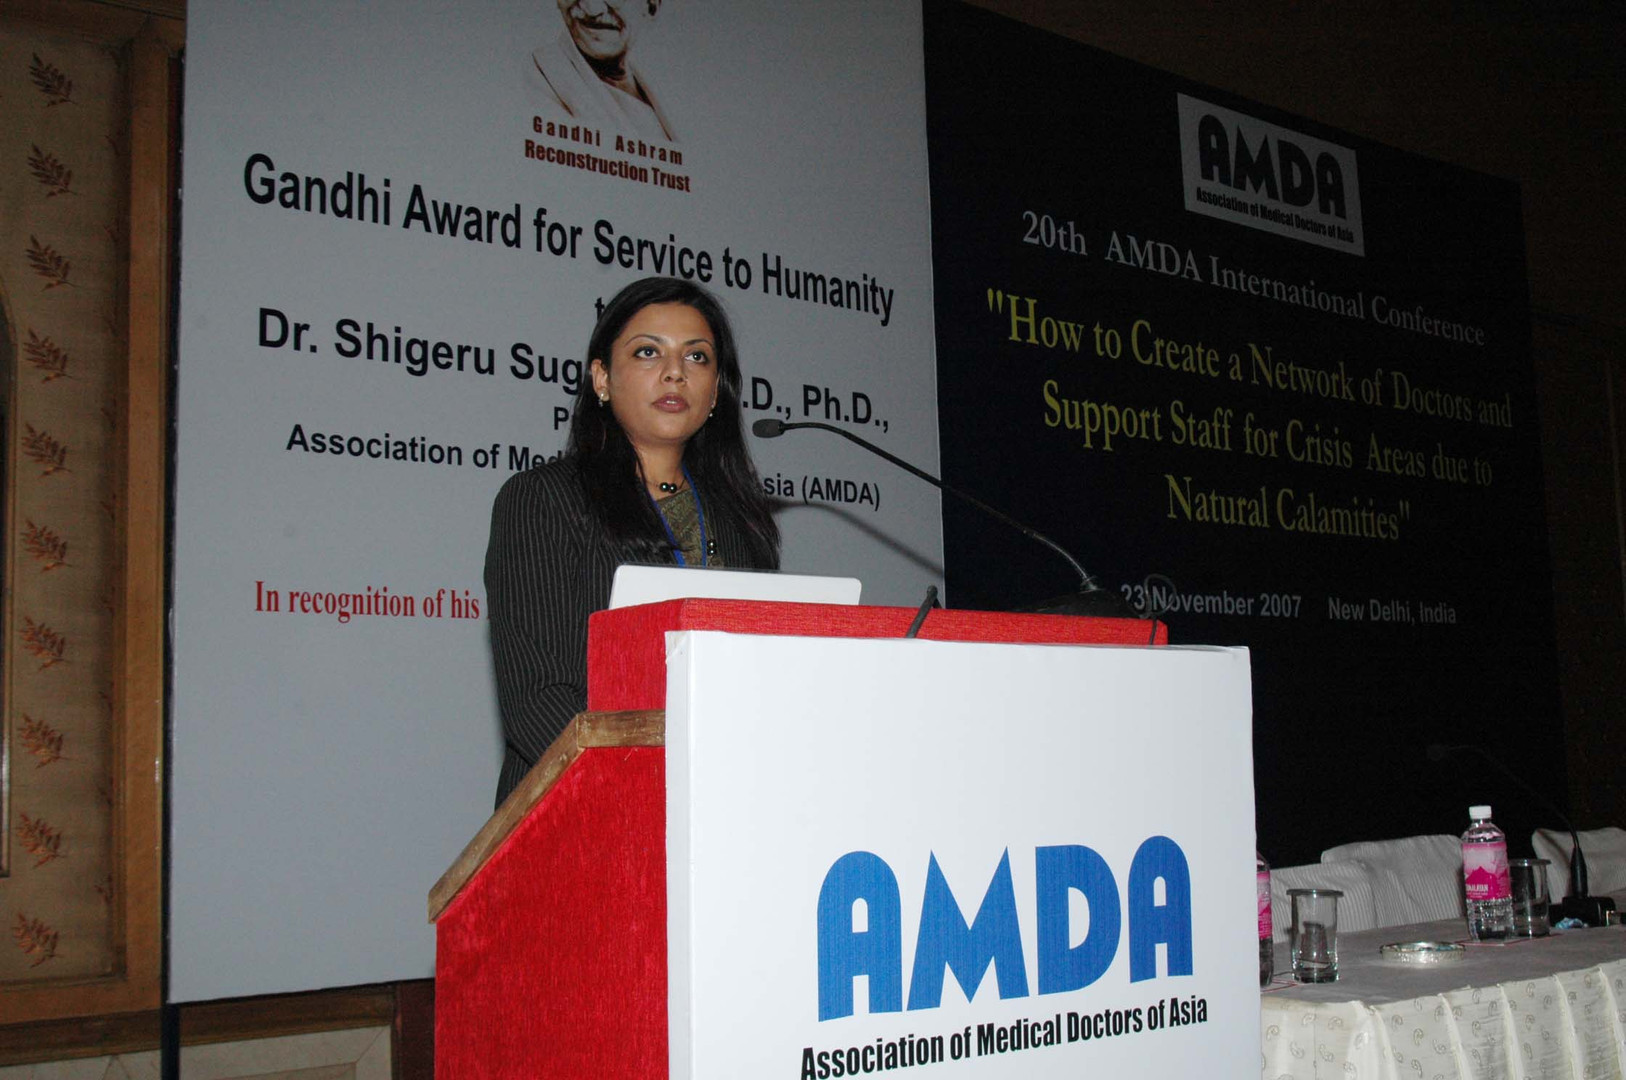 Gandhi Award ceremony at Hotel Ashok